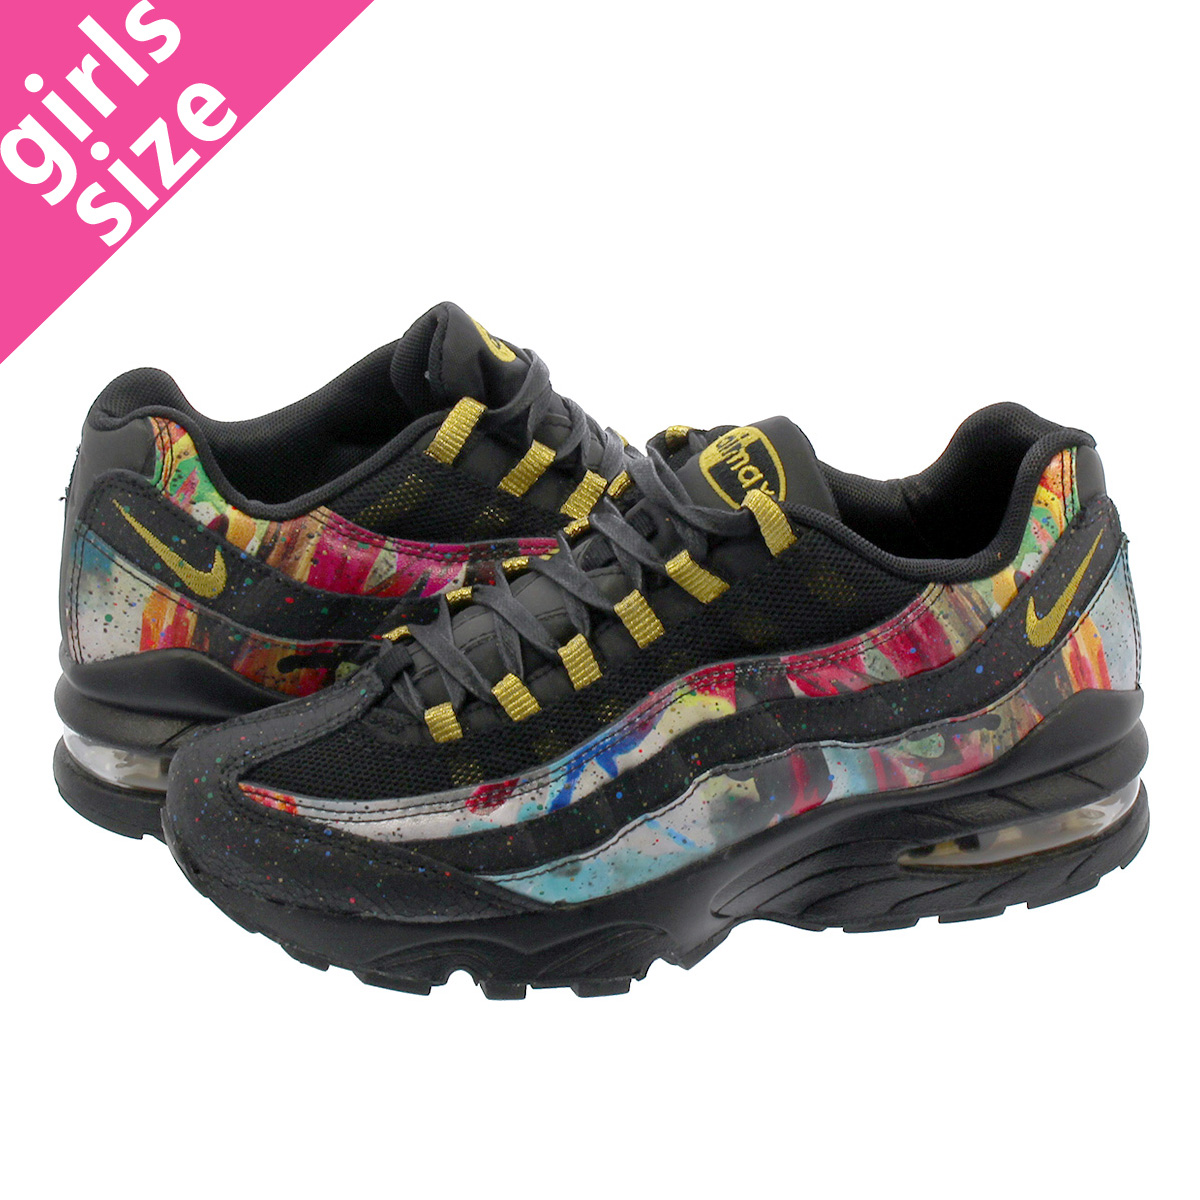 timeless design 5c8f7 b7a6d NIKE AIR MAX 95 GS Kie Ney AMAX 95 GS BLACK/METALLIC GOLD/COBALT BLAZE  at6158-001